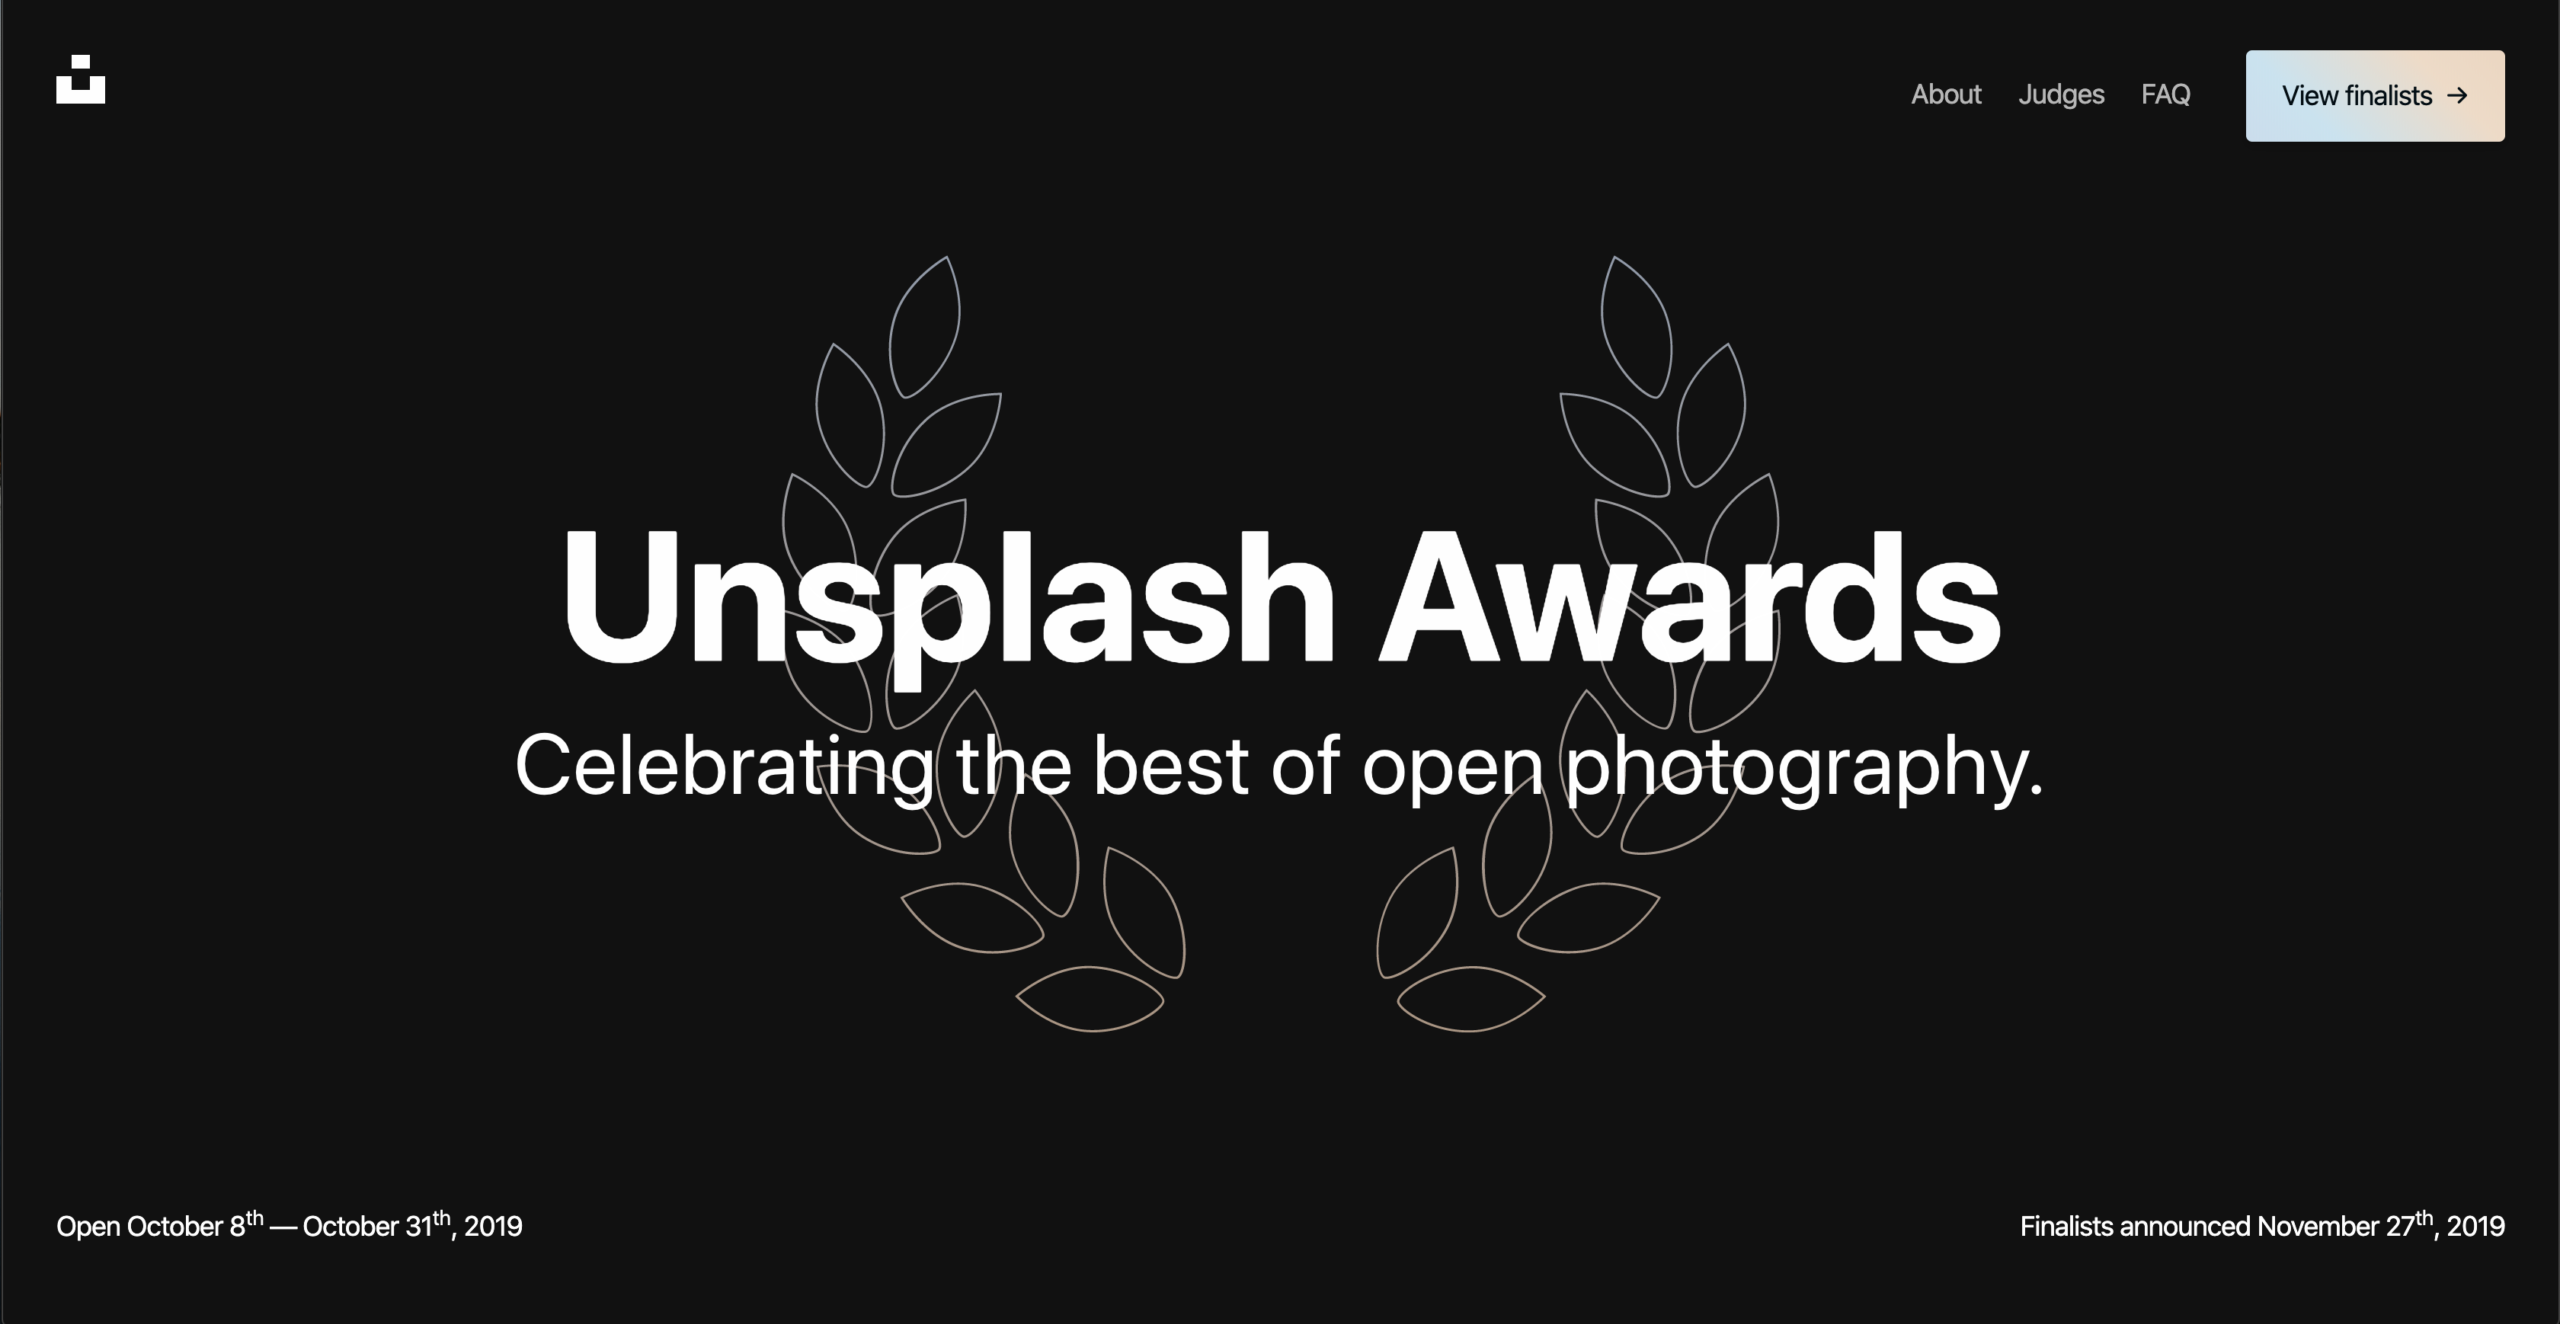 These Media Companies Condone Unsplash Blindsiding Photographers